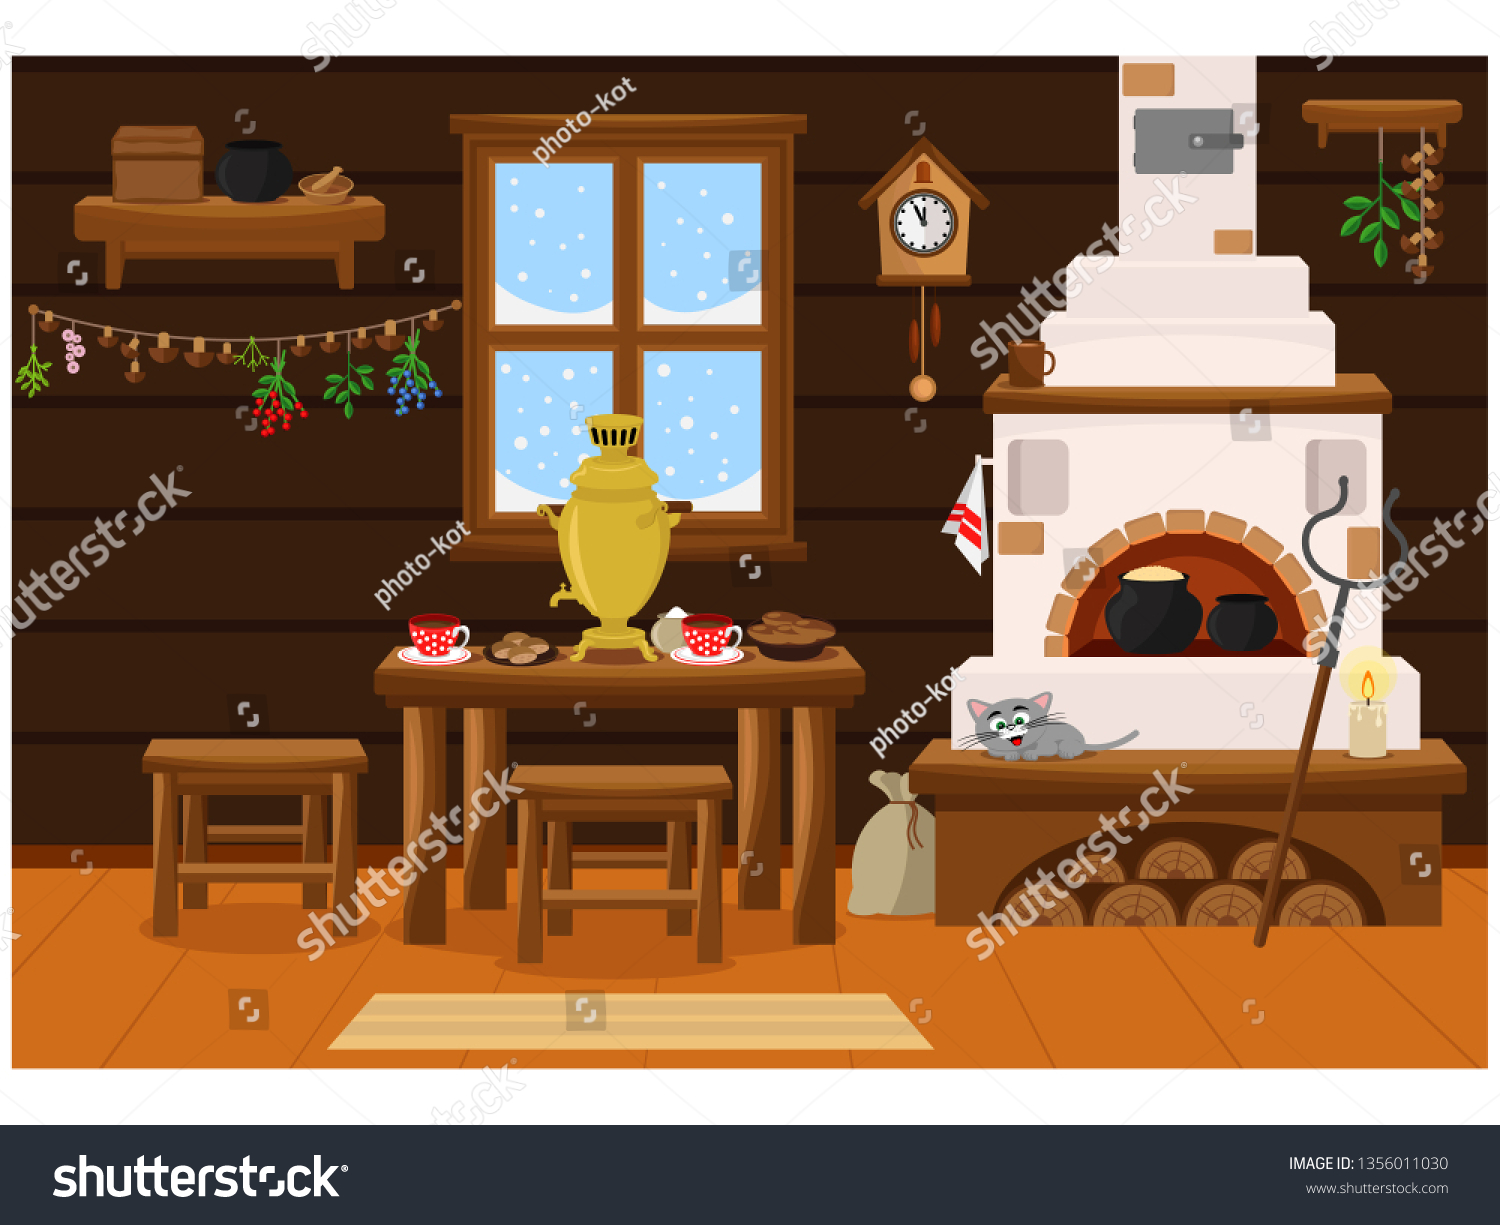 Interior Russian Village House Russian Stove Stock Vector ... on traditional french houses, traditional scottish houses, russia city houses, traditional hmong houses, traditional serbian houses, old french houses, traditional italian houses, traditional belgian houses, traditional bulgarian houses, traditional greek houses, traditional danish houses, traditional chinese house, traditional swedish houses, siberia russia houses, traditional ukraine houses, izba peasant houses, traditional tswana houses, traditional norwegian houses, traditional omani houses, traditional irish houses,